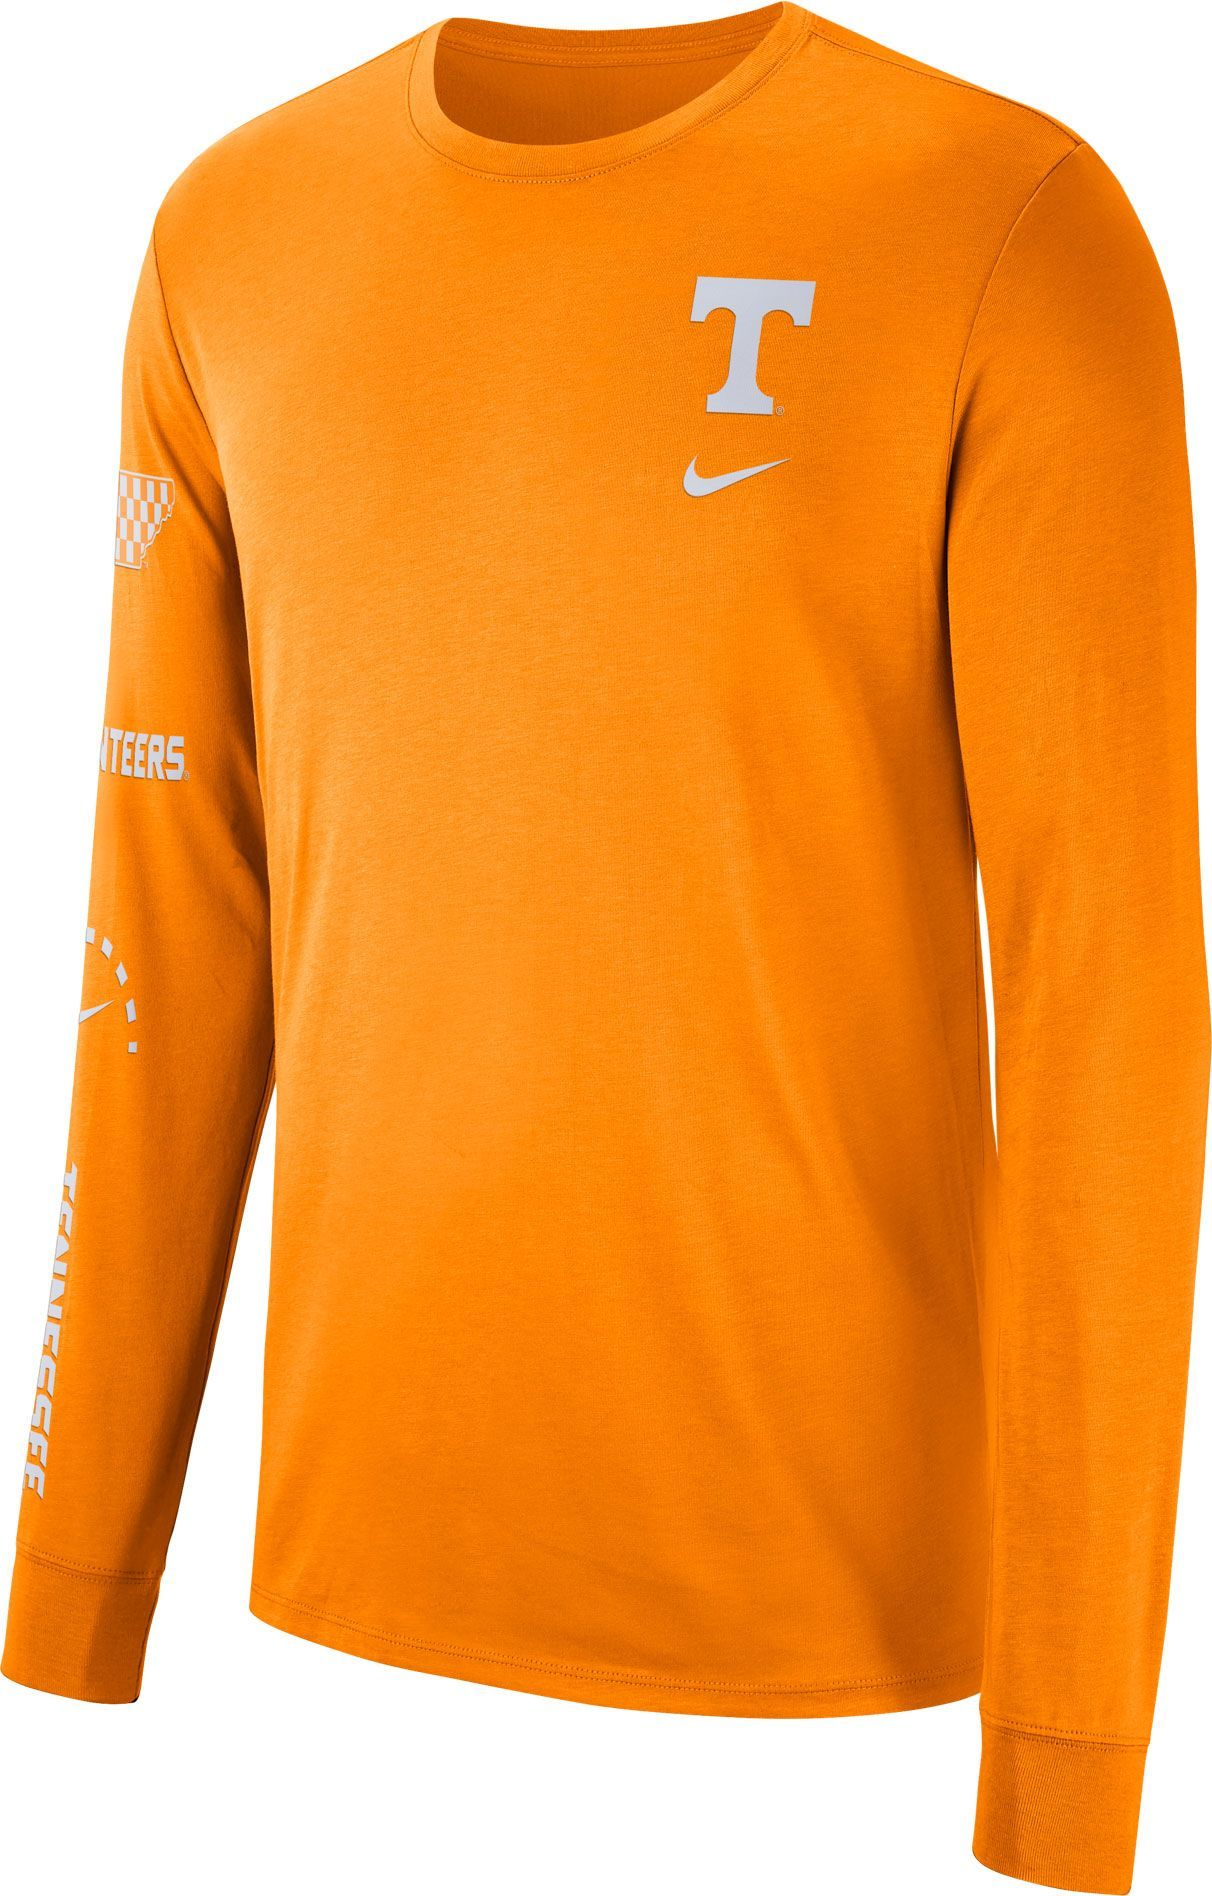 fb74aeaac Nike Men's Tennessee Volunteers Tennessee Orange Dri-FIT Elevated  Basketball Long Sleeve Shirt